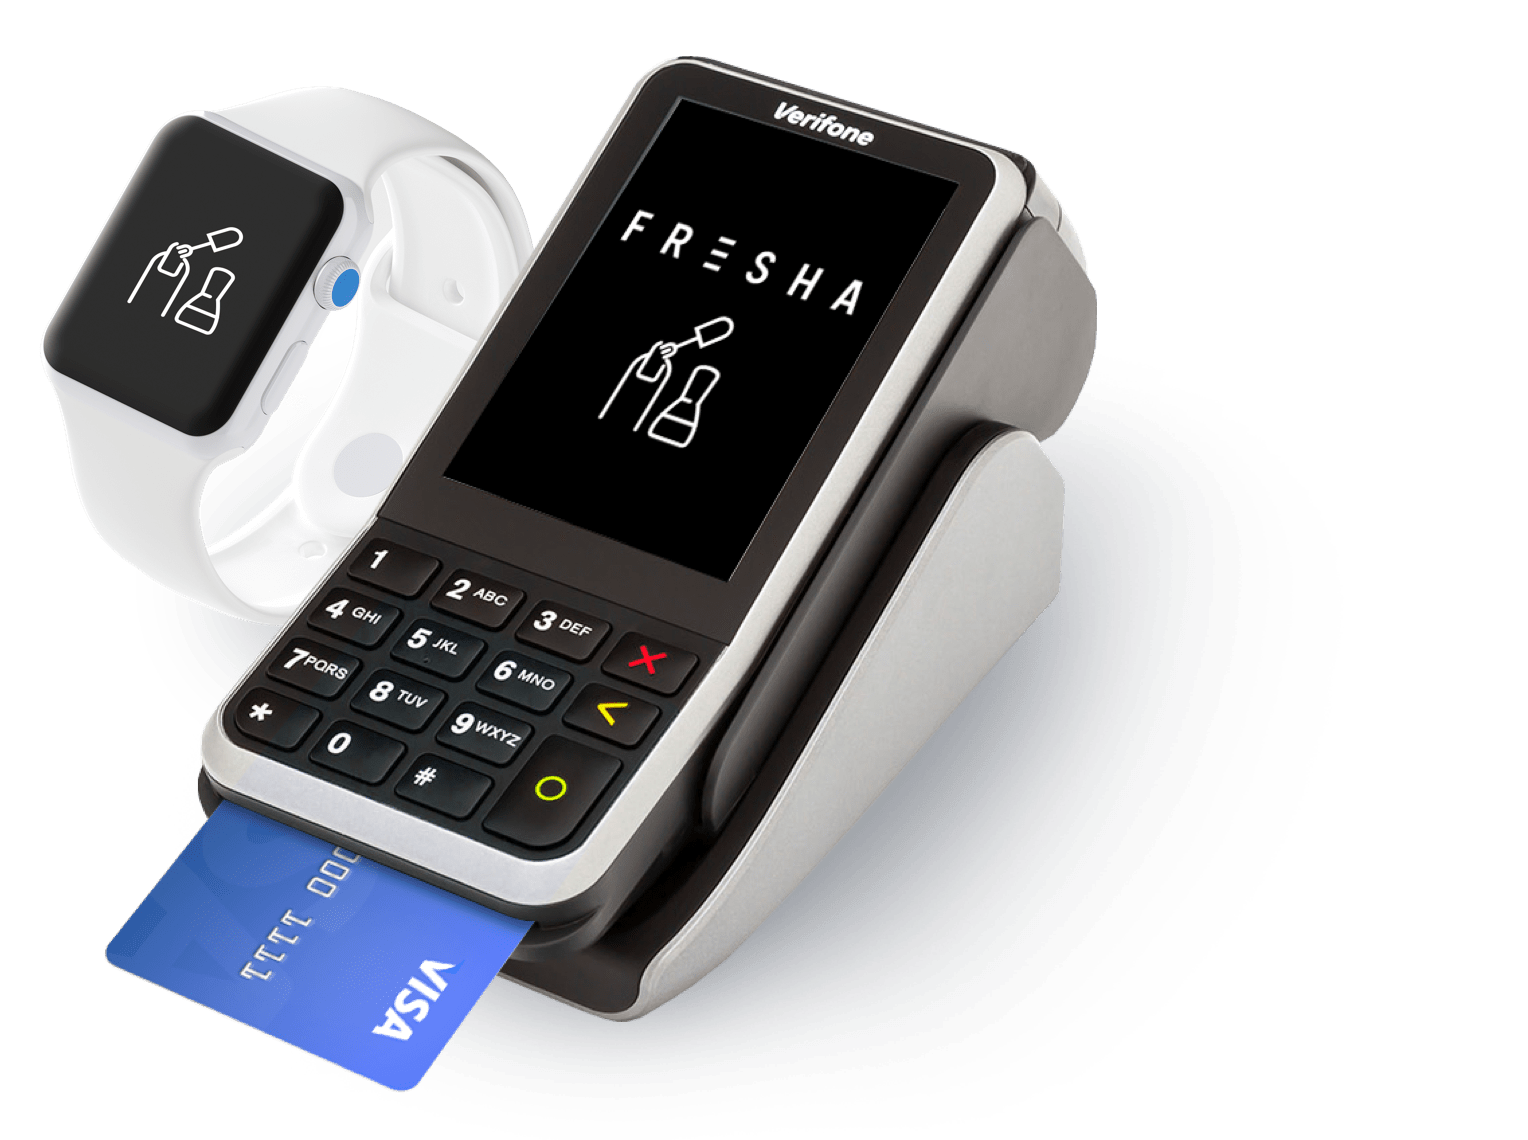 Nail Salon payment terminal, payment processing and online payments solution